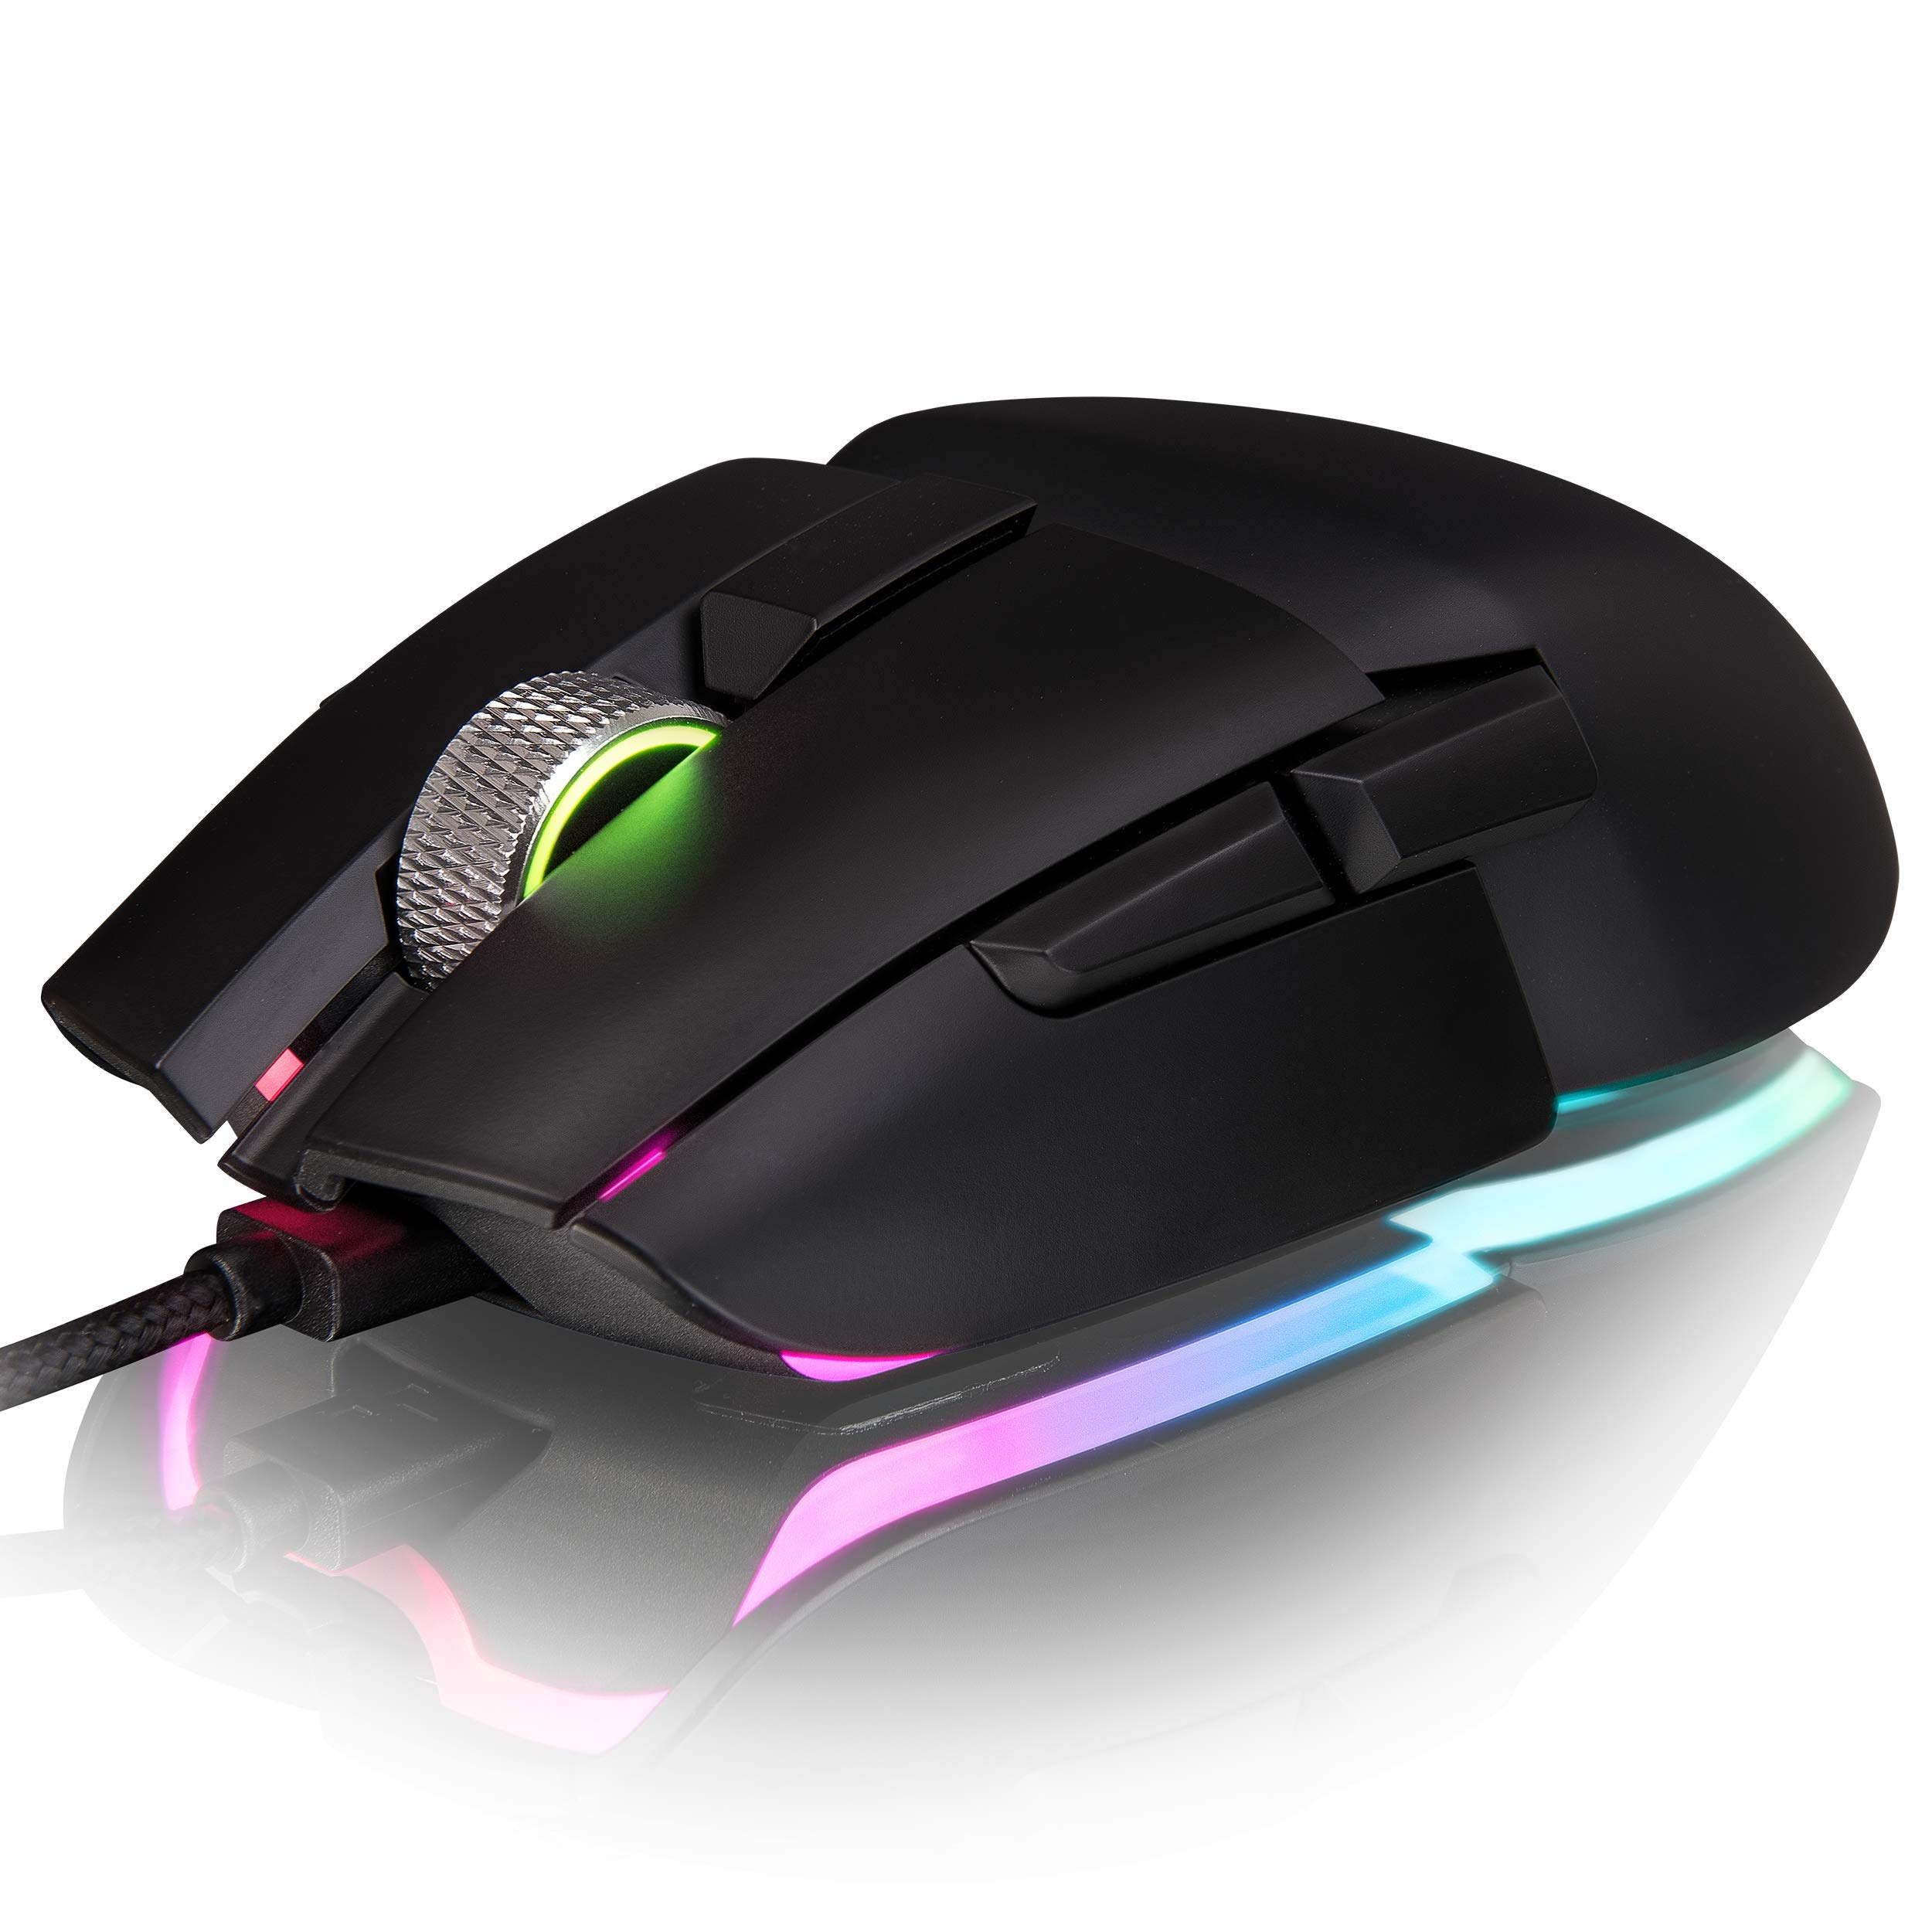 Thermaltake Argent M5 Gaming Mouse, 16.8M RGB Color Software Enabled, 8 Customizable Dynamic Lighting Effects, PIXART PMW-3389 Optical Sensor, DPI Adjustments Up to 16,000. GMO-TMF-WDOOBK-01